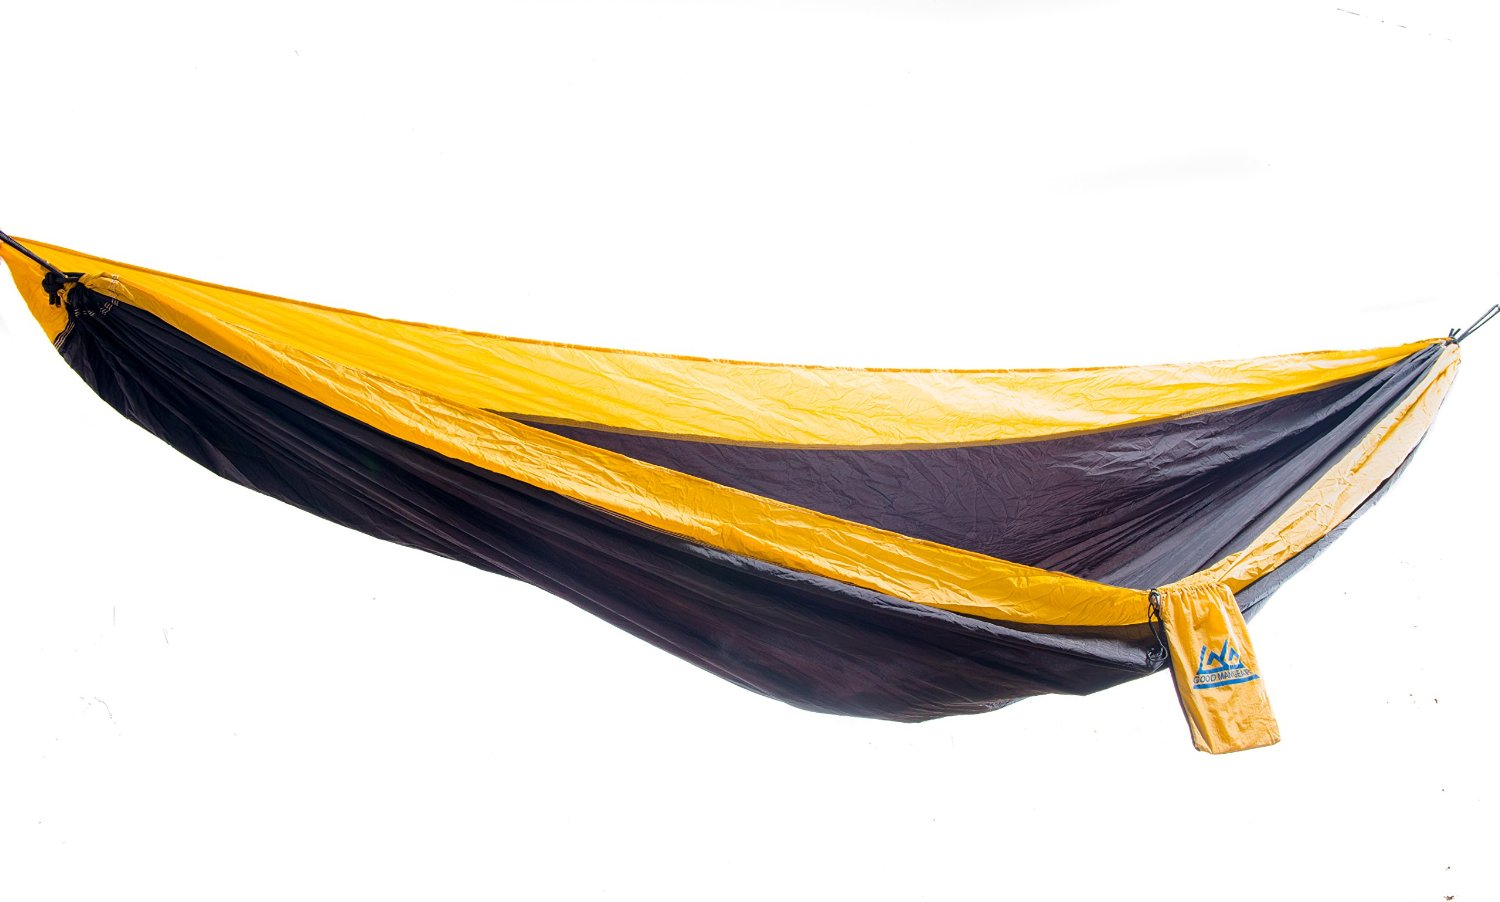 Parachute Hammock by Goodman Gear Includes Hanging Tree Straps for limited time! Best Portable Hammock for Hiking, Backpacking, Camping, Scouting, Expeditions, Backyard Relaxing and Dorm Rooms. Why Pay More Separate? Brought to You By a Top USA Outfitter and Satisfaction Is Guaranteed!